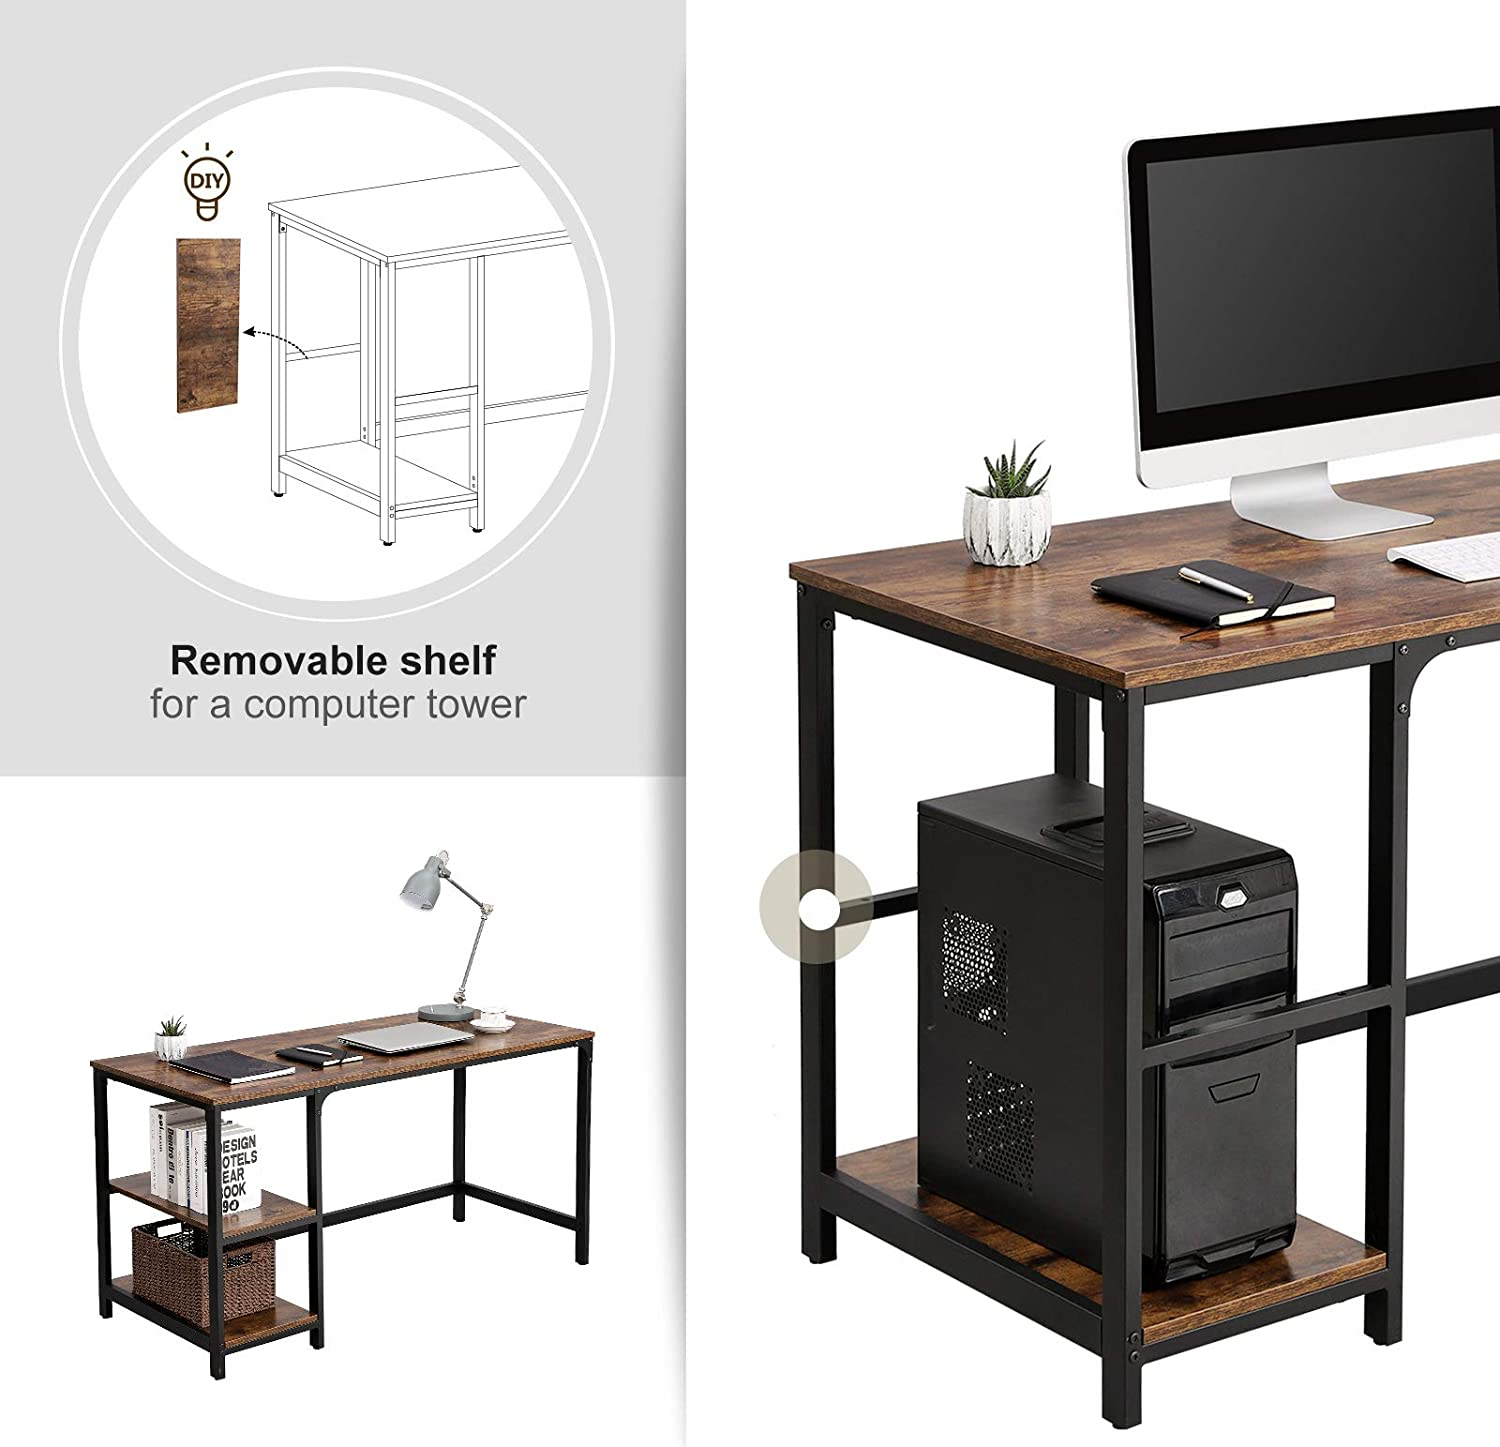 VASAGLE Computer Desk, 55-Inch Writing Desk, with 2 Shelves on Left or Right, Stable Steel Frame, Easy Assembly, Rustic Brown and Black ULWD55X: Home & Kitchen